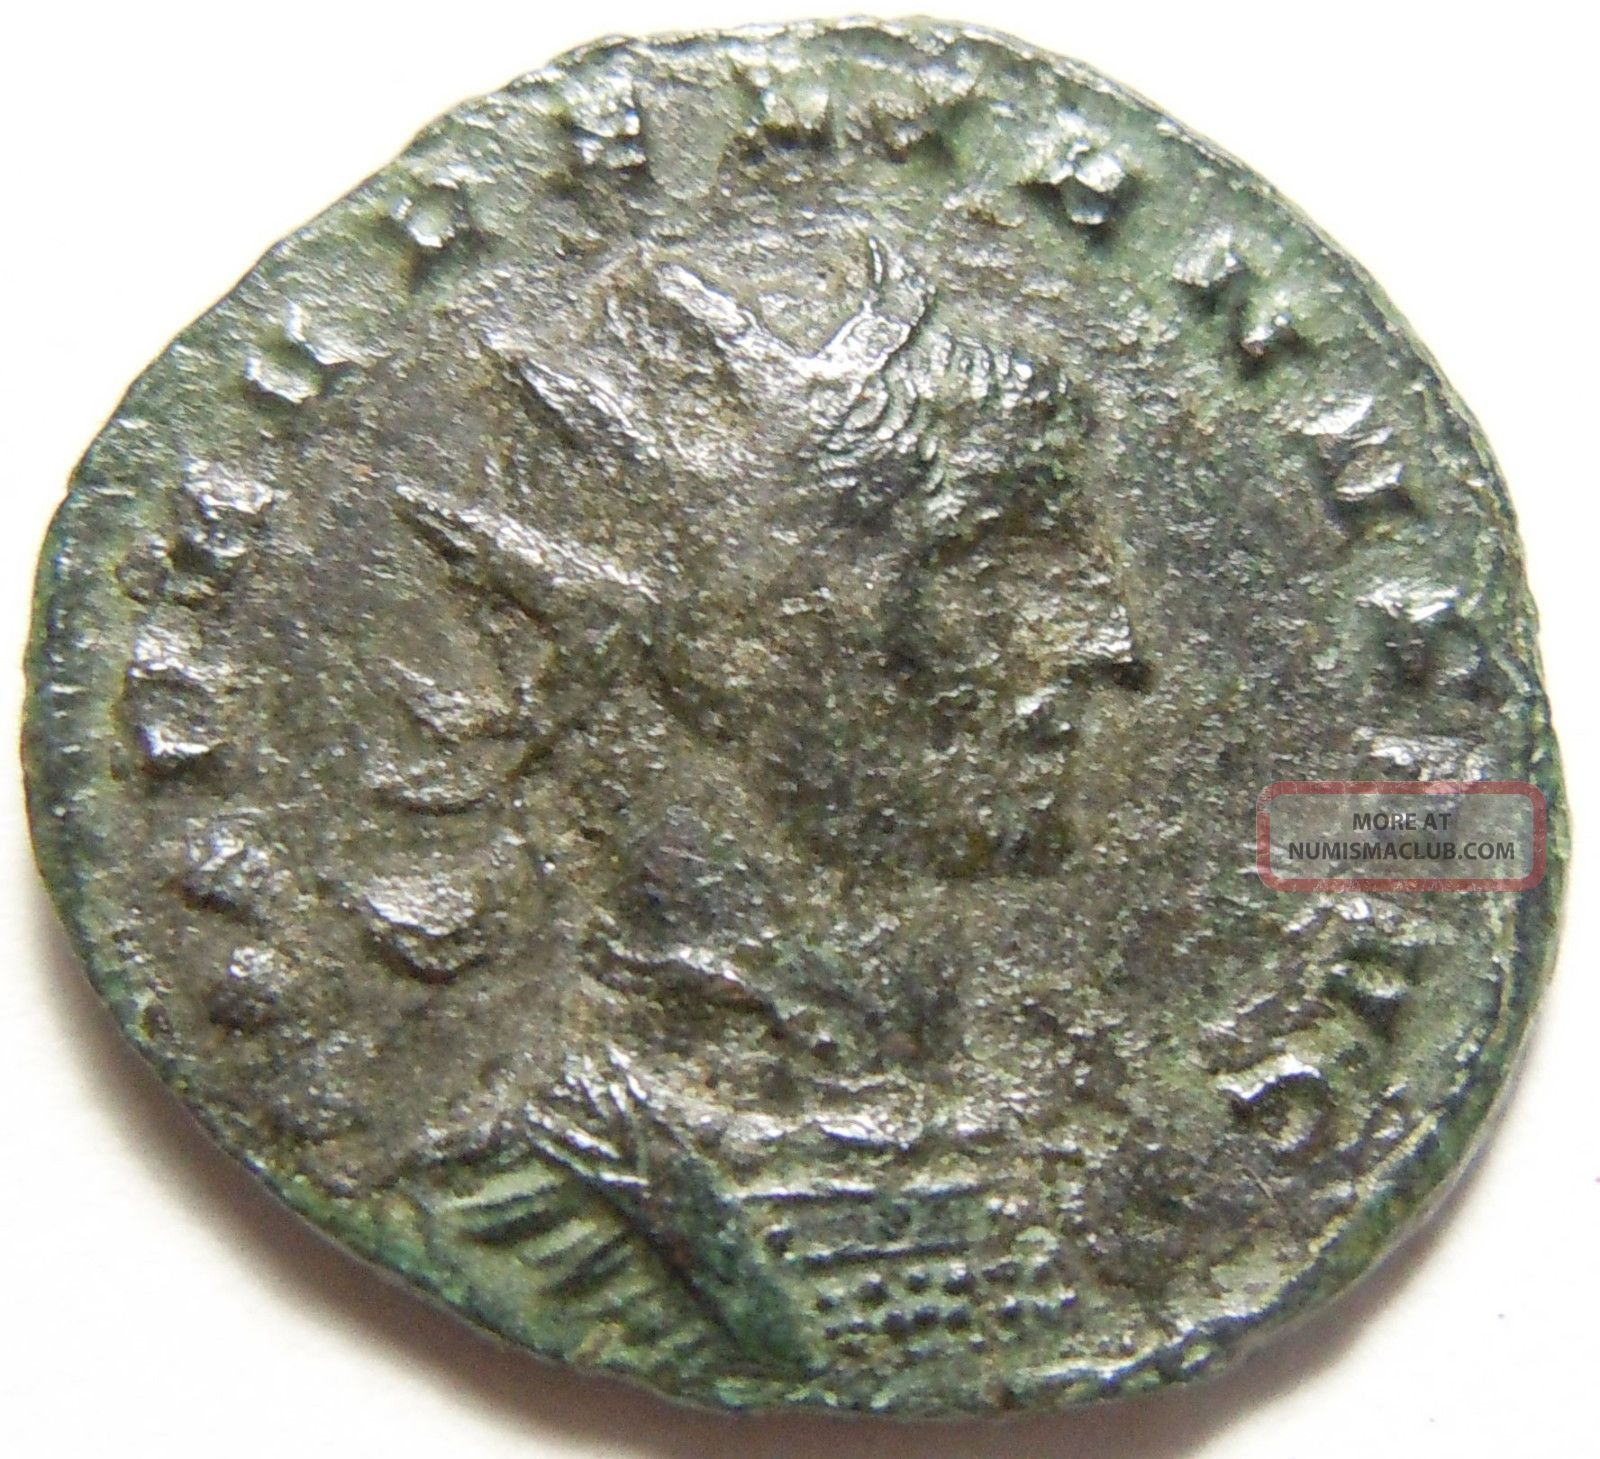 Aurelian Ae Antoninianus Restitvt Orientis,  Female Figure & Emperor Coins: Ancient photo